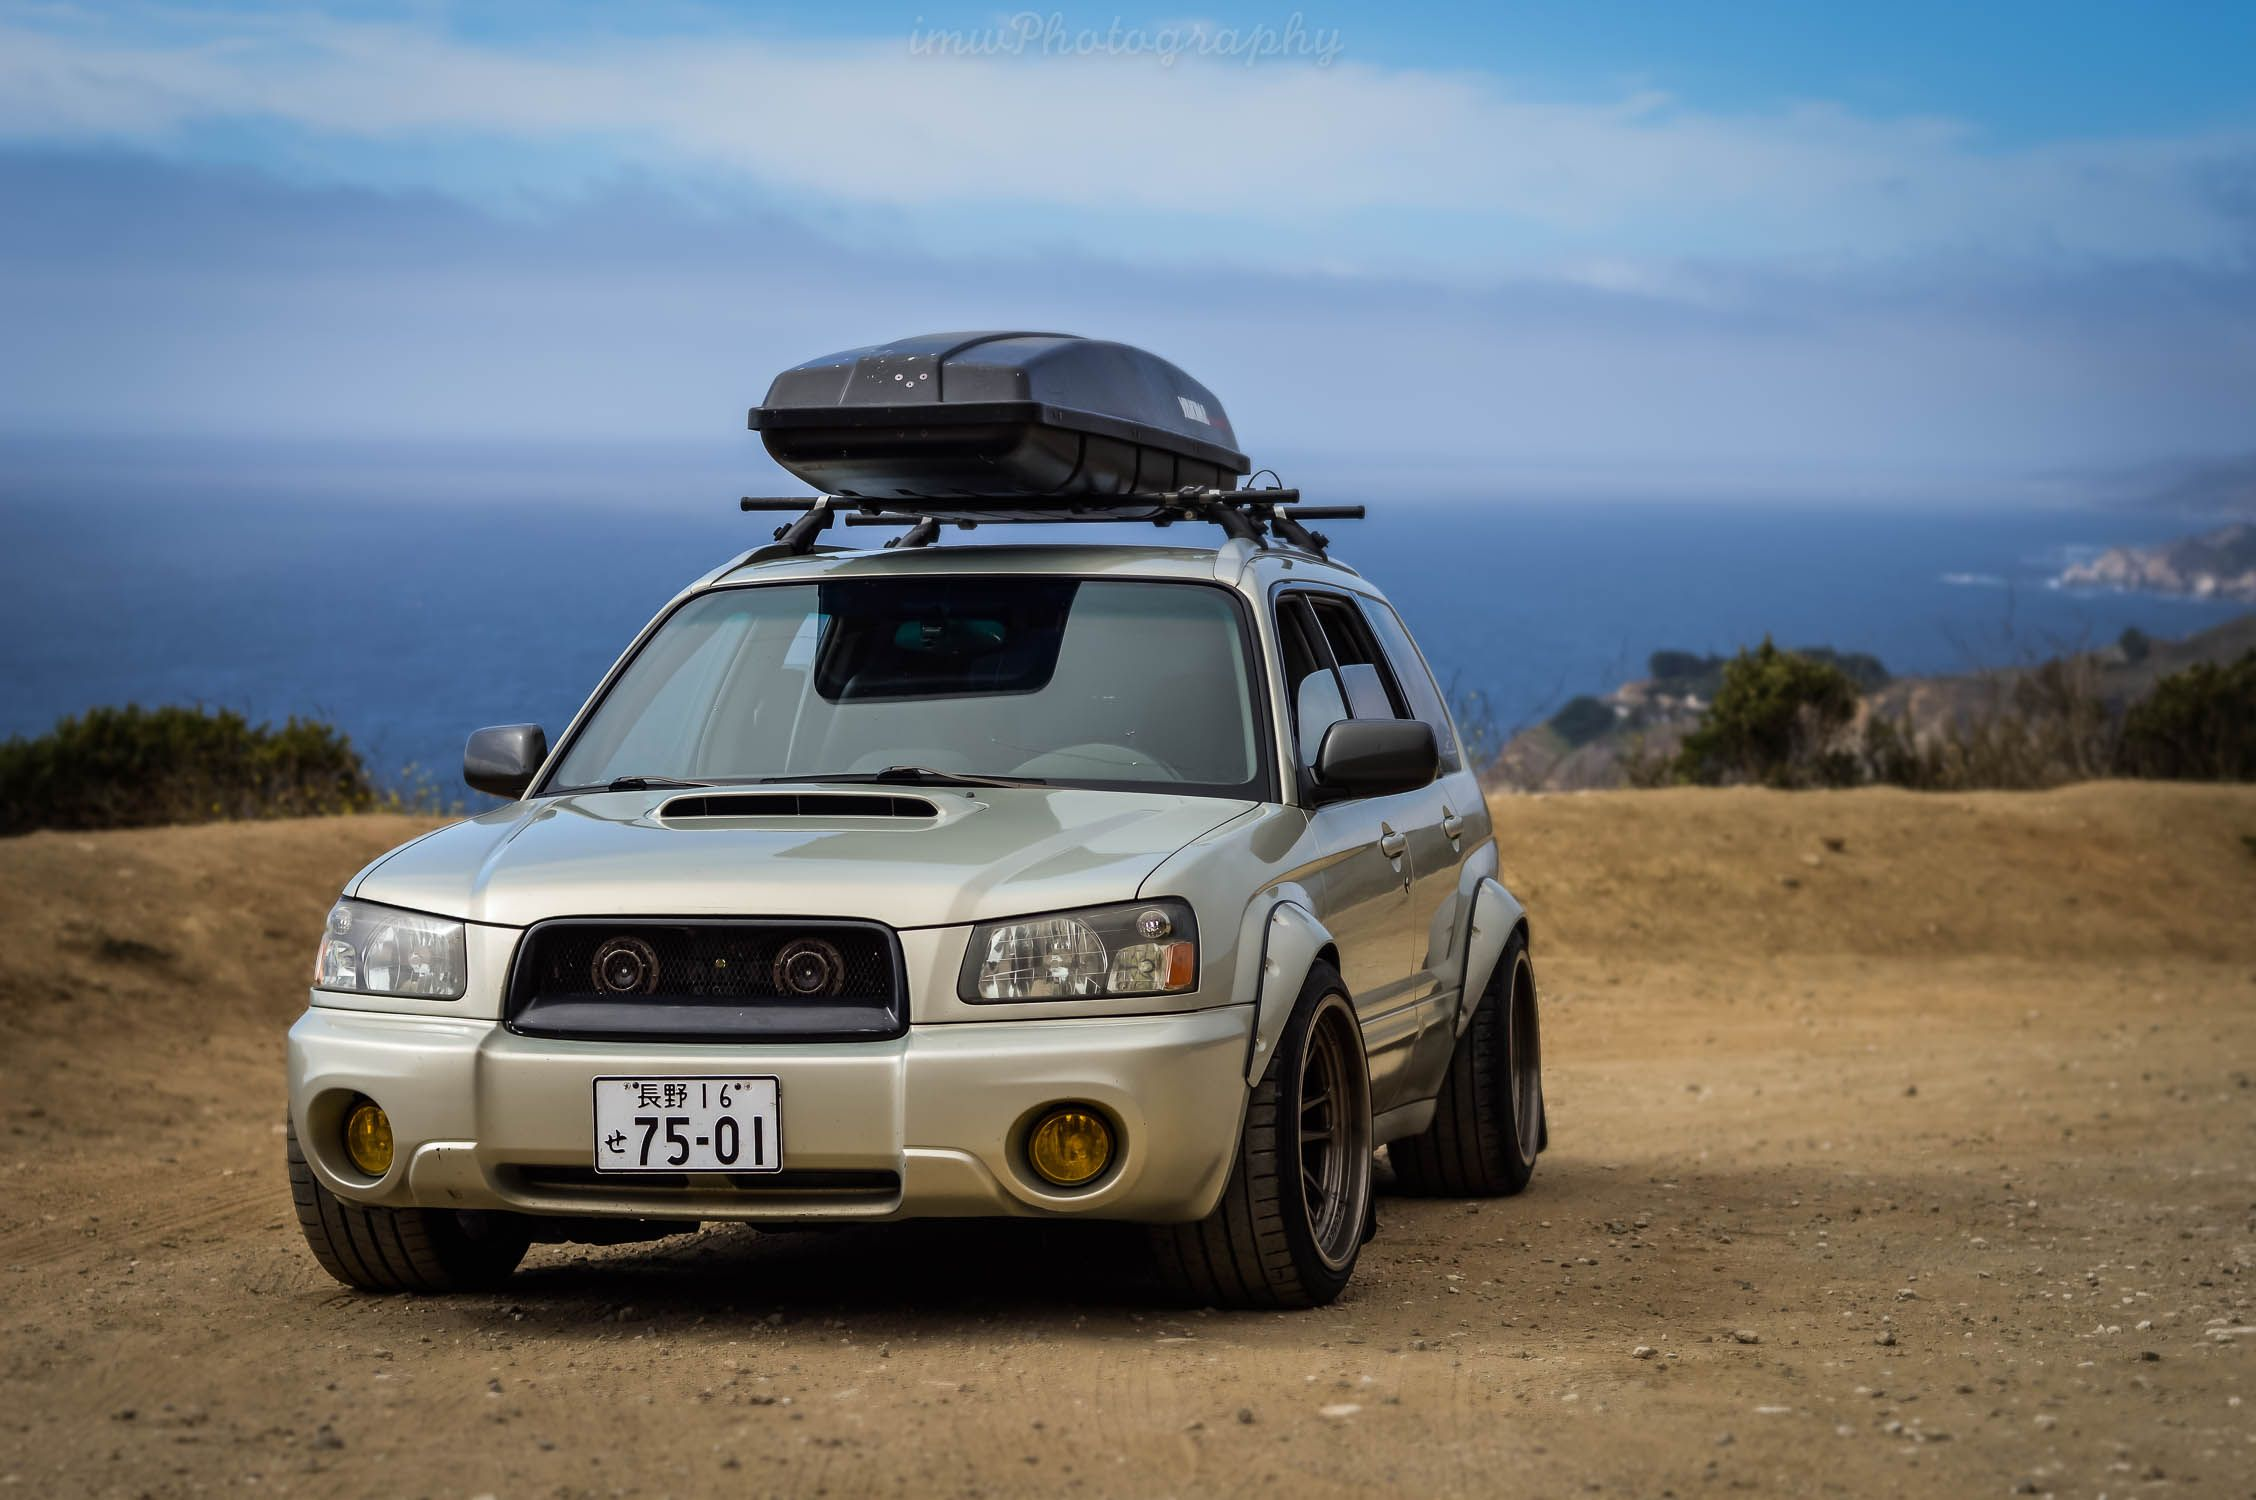 Forester Front End Friday Subaru Wrx Sti Impreza Forester Subie Subaru Forester Xt Subaru Cars Subaru Forester